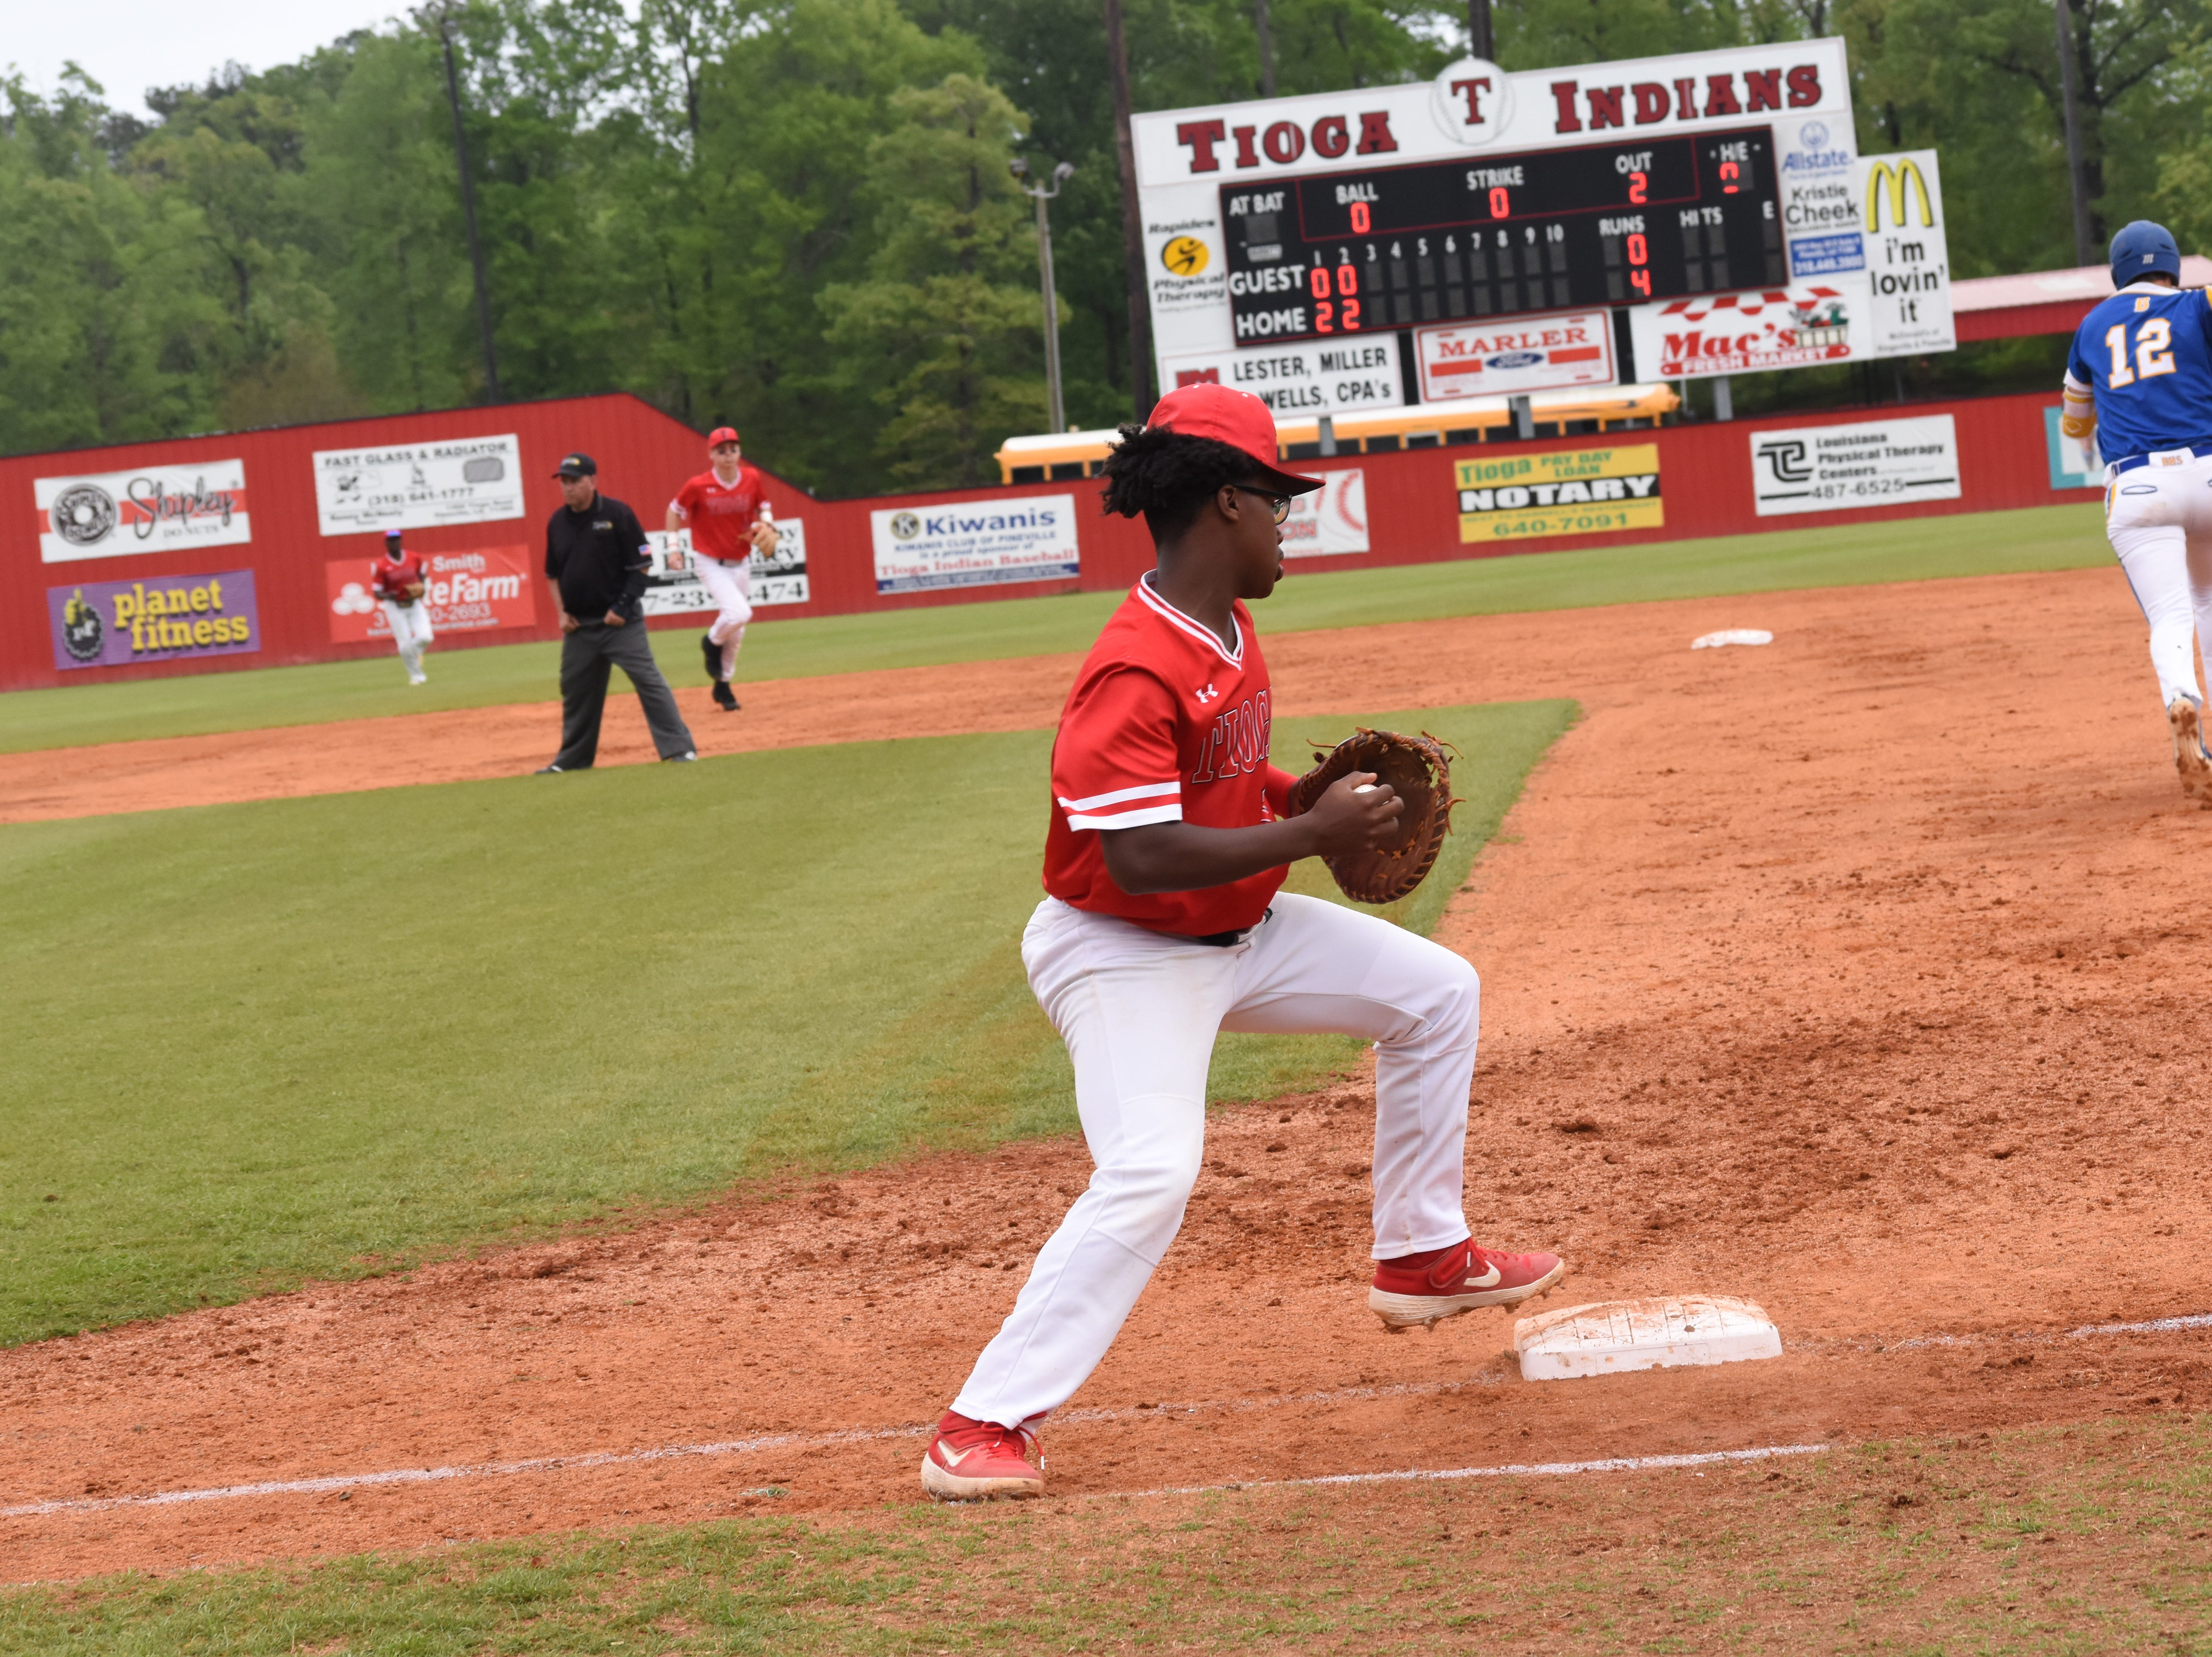 Tioga High School hosted Buckeye High School in double-header Friday, April 5, 2019. Tioga won both games. The first 10-0 and the second 11-1.